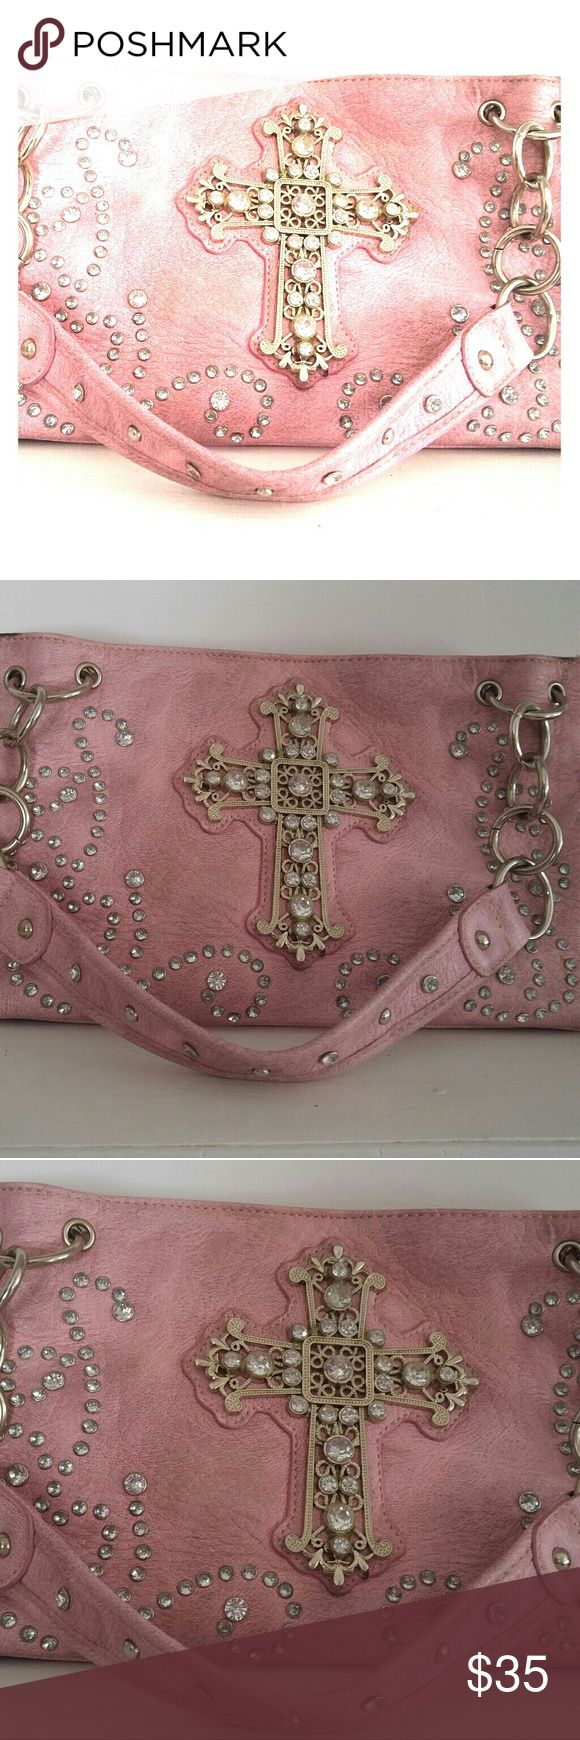 💋Pink rhinestone and gem purse💋 Pink purse with rhinestones and gems all sit nicely on and around cross. Lots of pockets! About 10 !!! Great keep everything organized!! Purse is a little weathered. All gems seem to be still in tact and pockets are in good shape! Country Rhode Bags